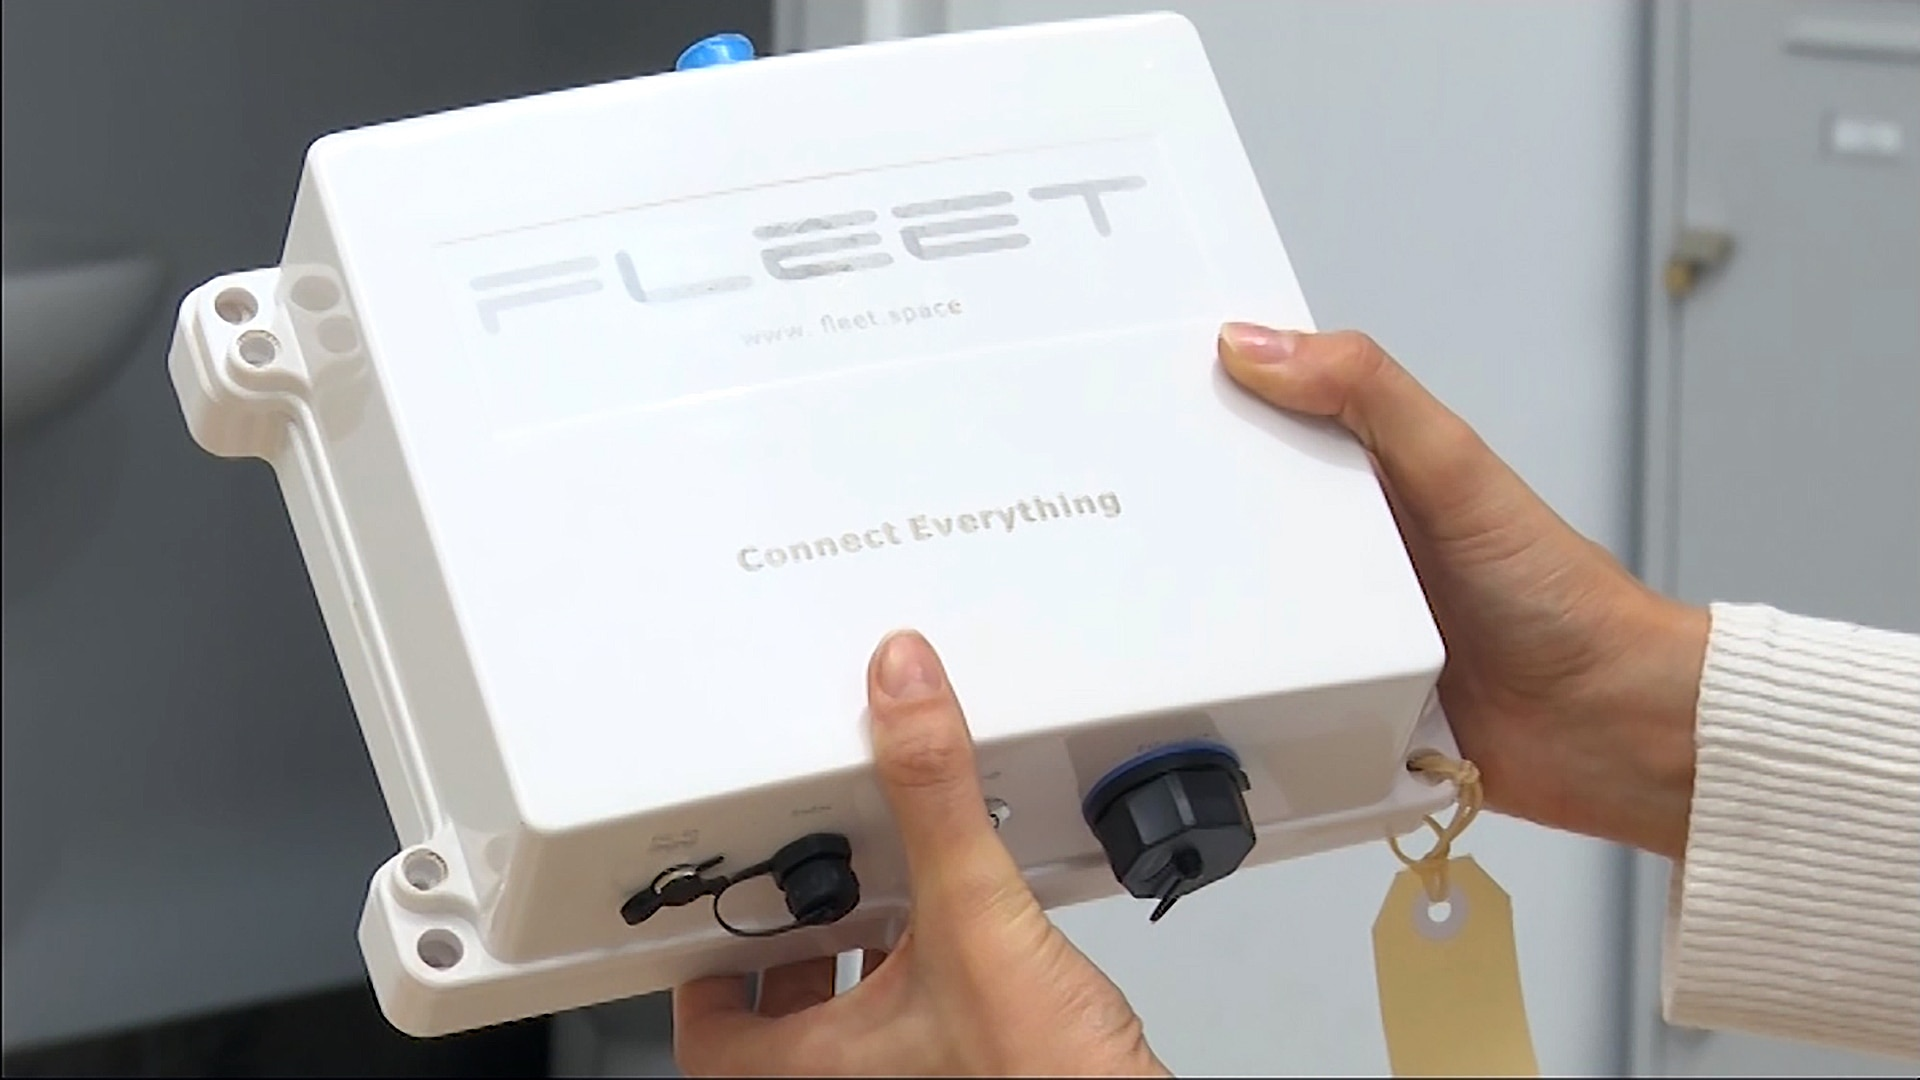 Fleet Space Technologies nano-satellites will help businesses stay connected with even their most remote operations from orbit.